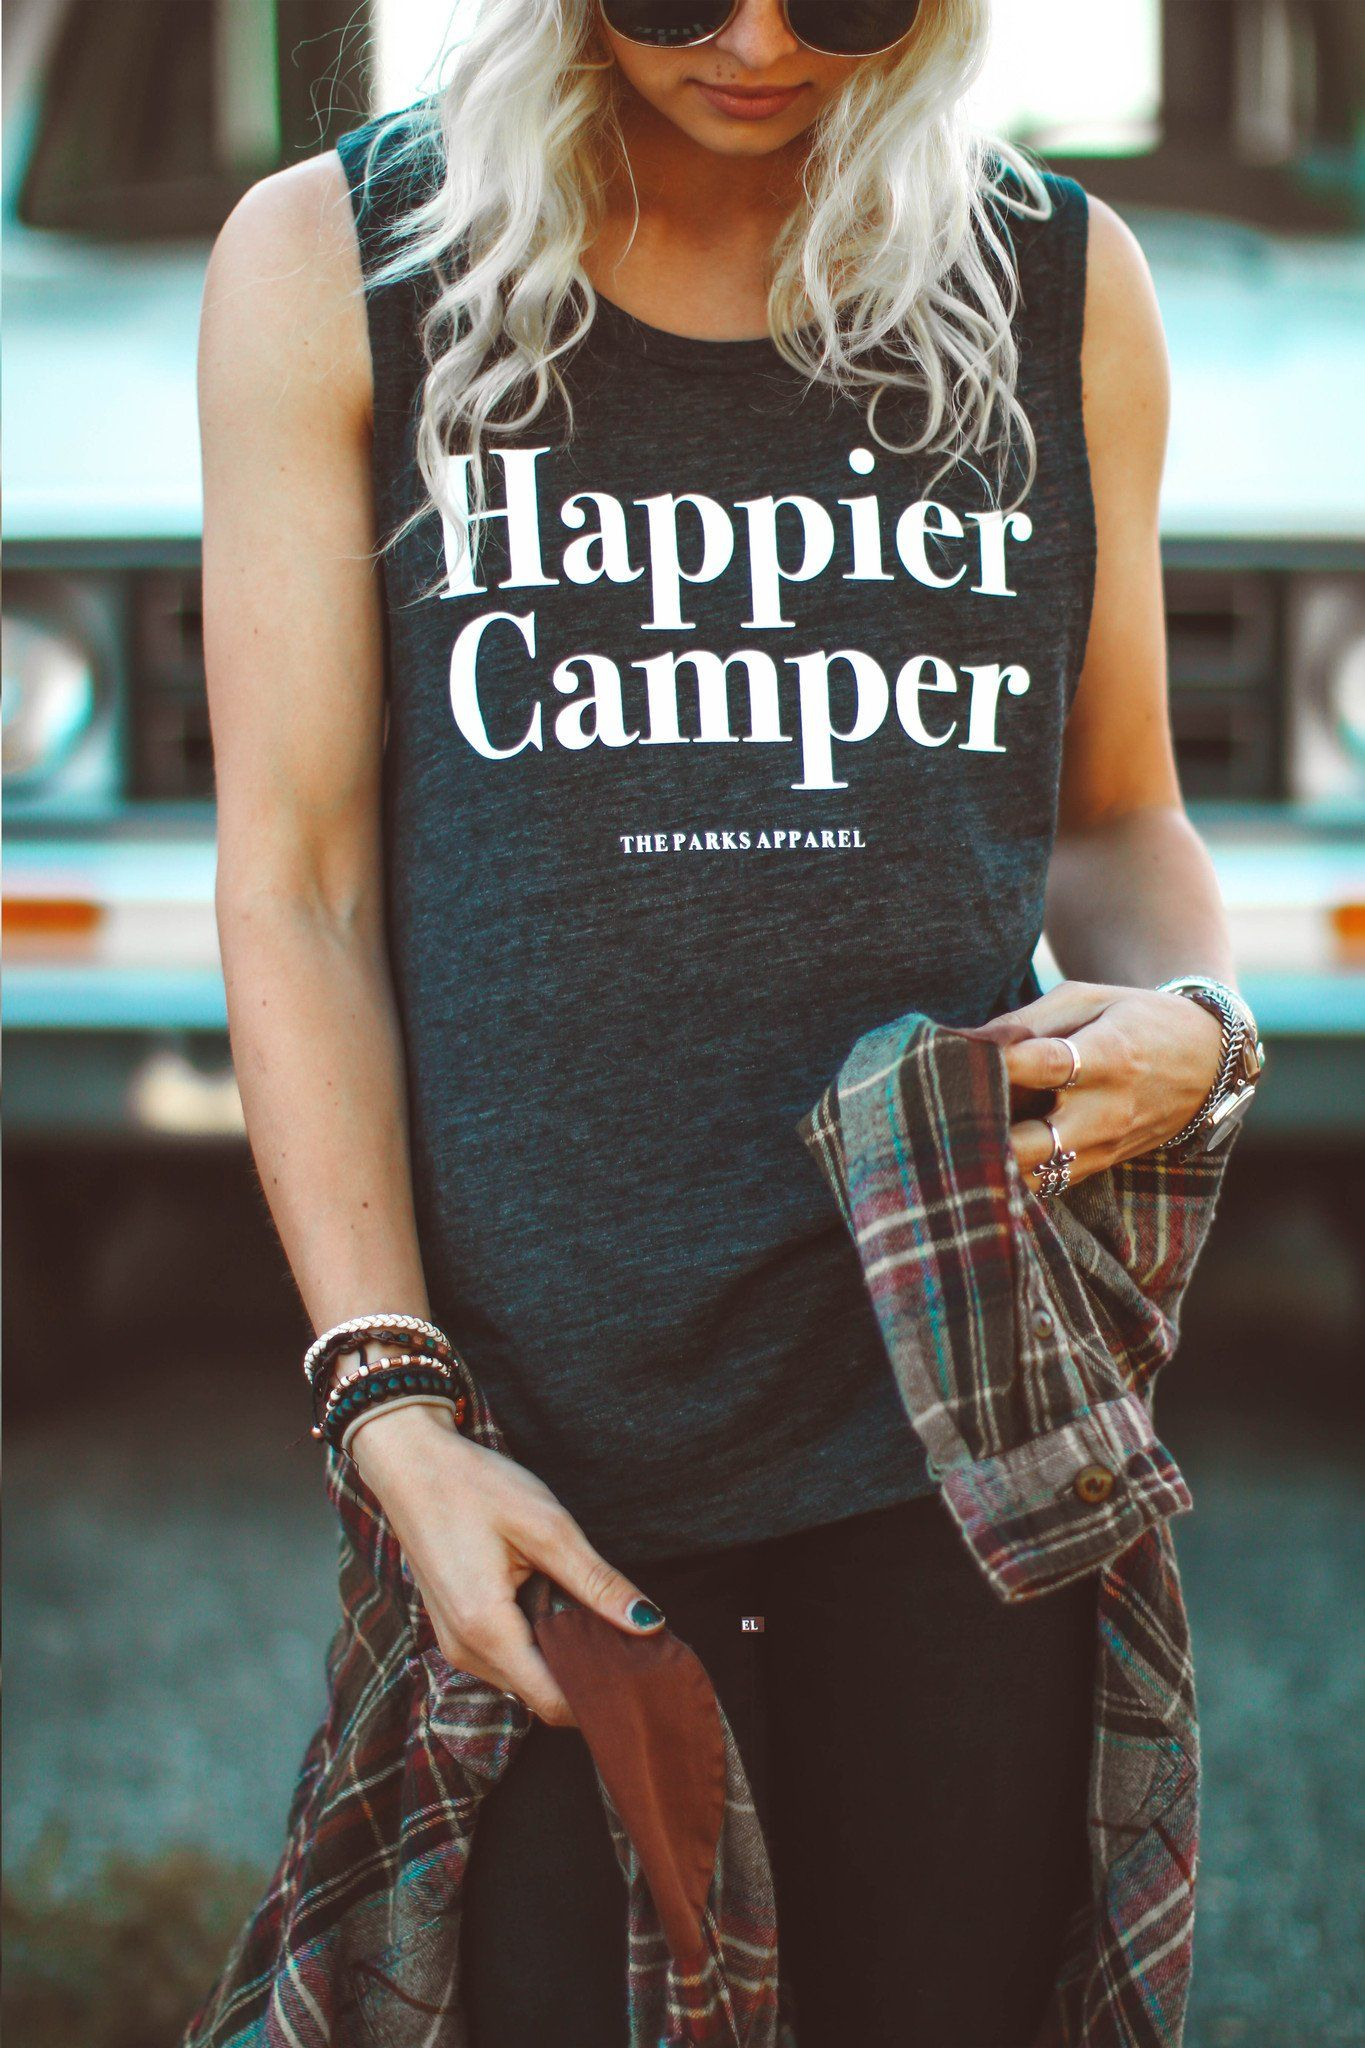 Gangster flannel shirts  The Parks Apparel presents our Happier Camper muscle tank Why be a